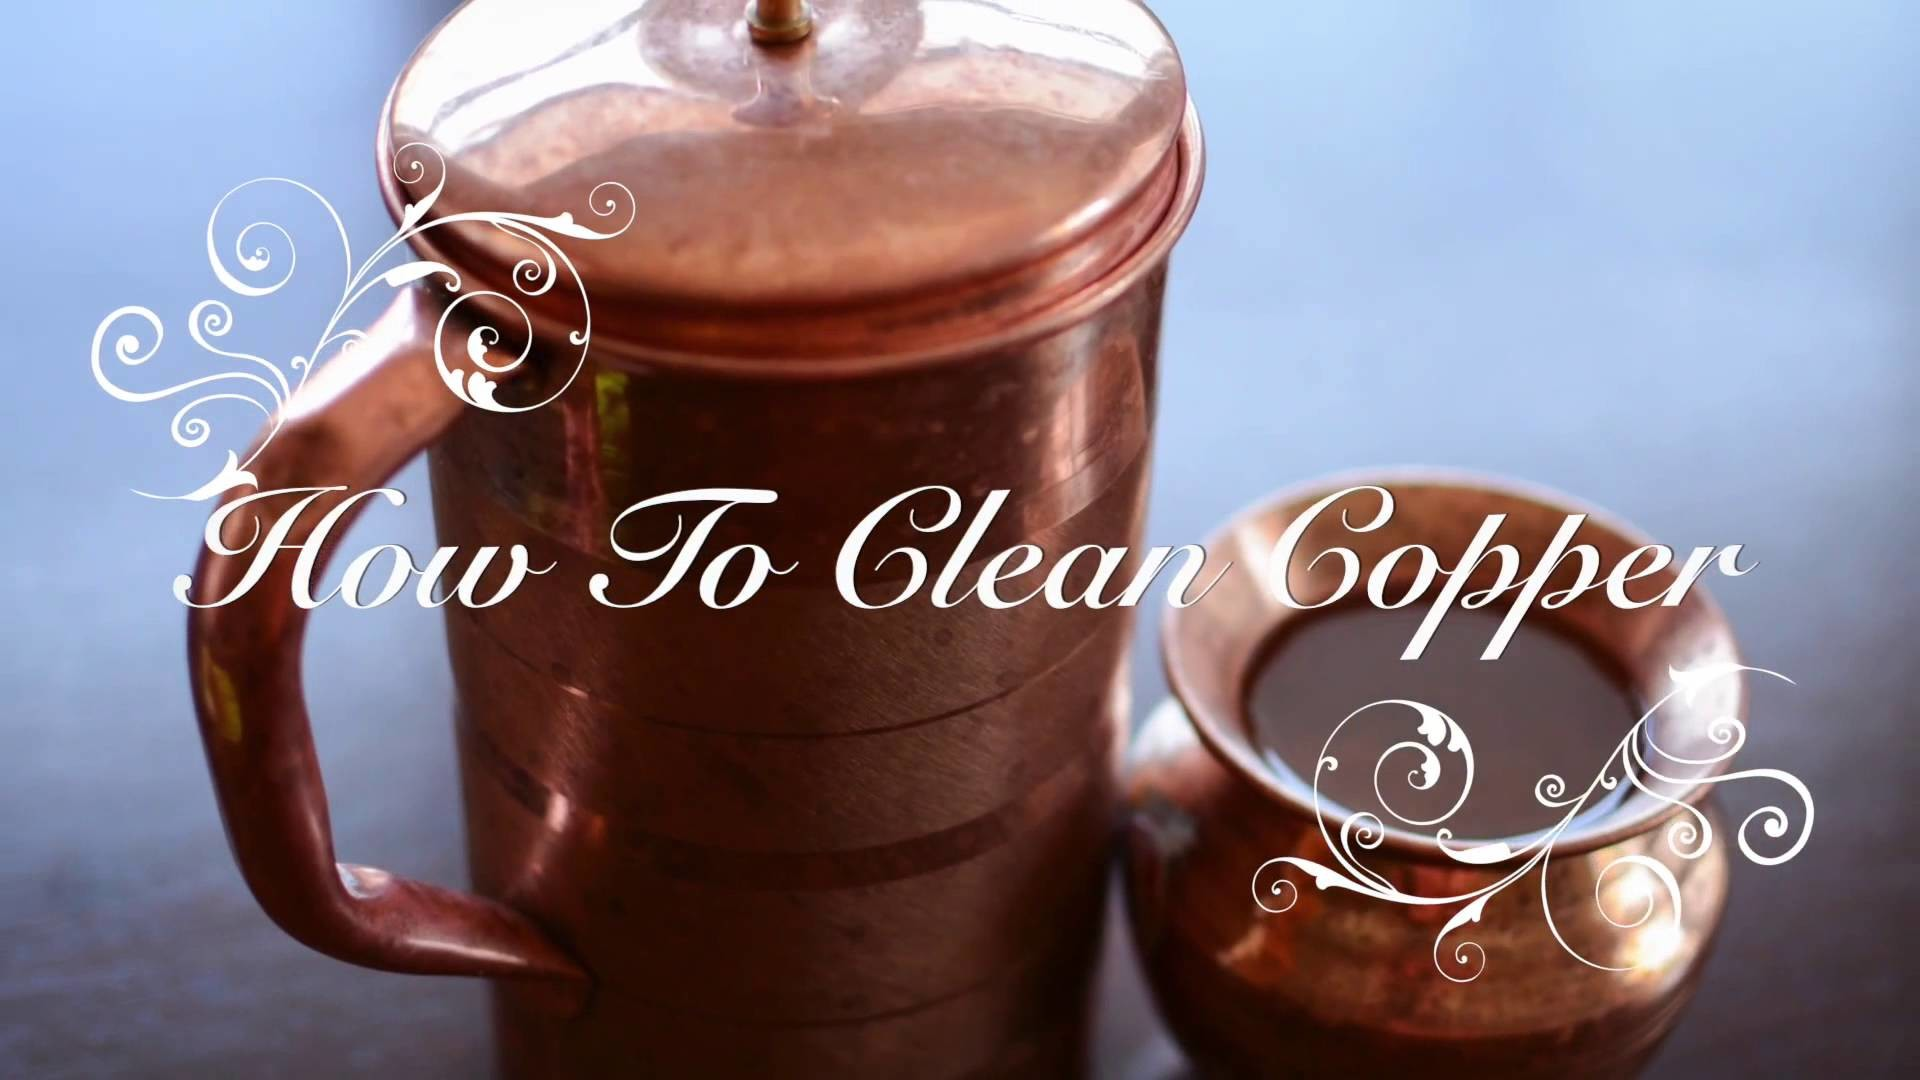 How to Clean Copper Vessel